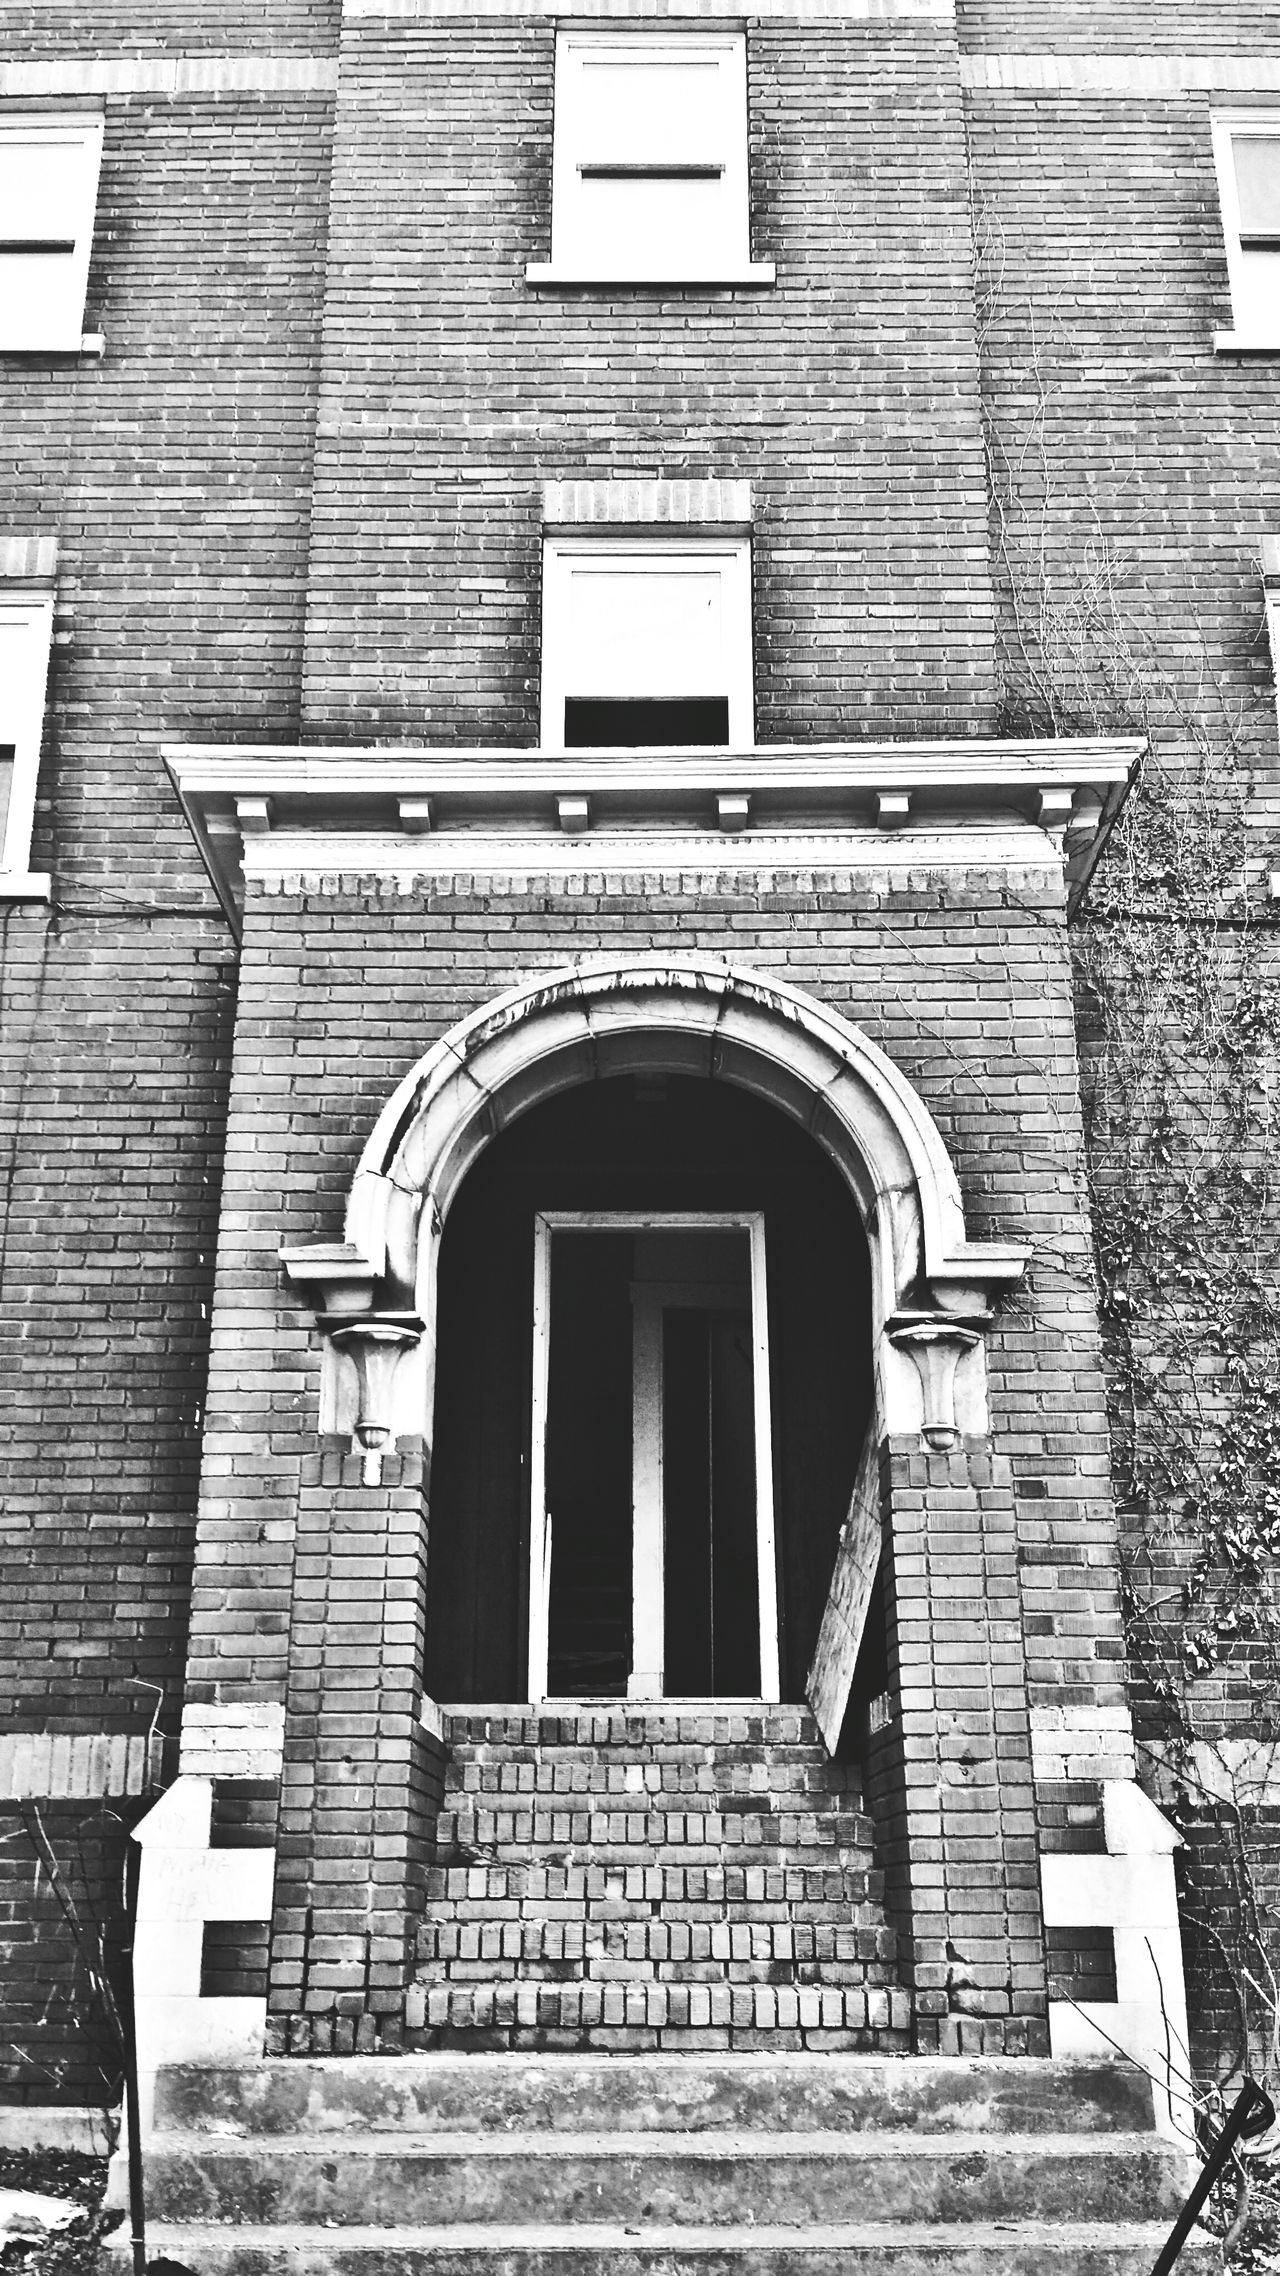 Doorway To Another World Bad Places Abandoned And Derelict Blkandwht Dark And Mysterious Popular Photos Blackandwhite Photography Doorporn